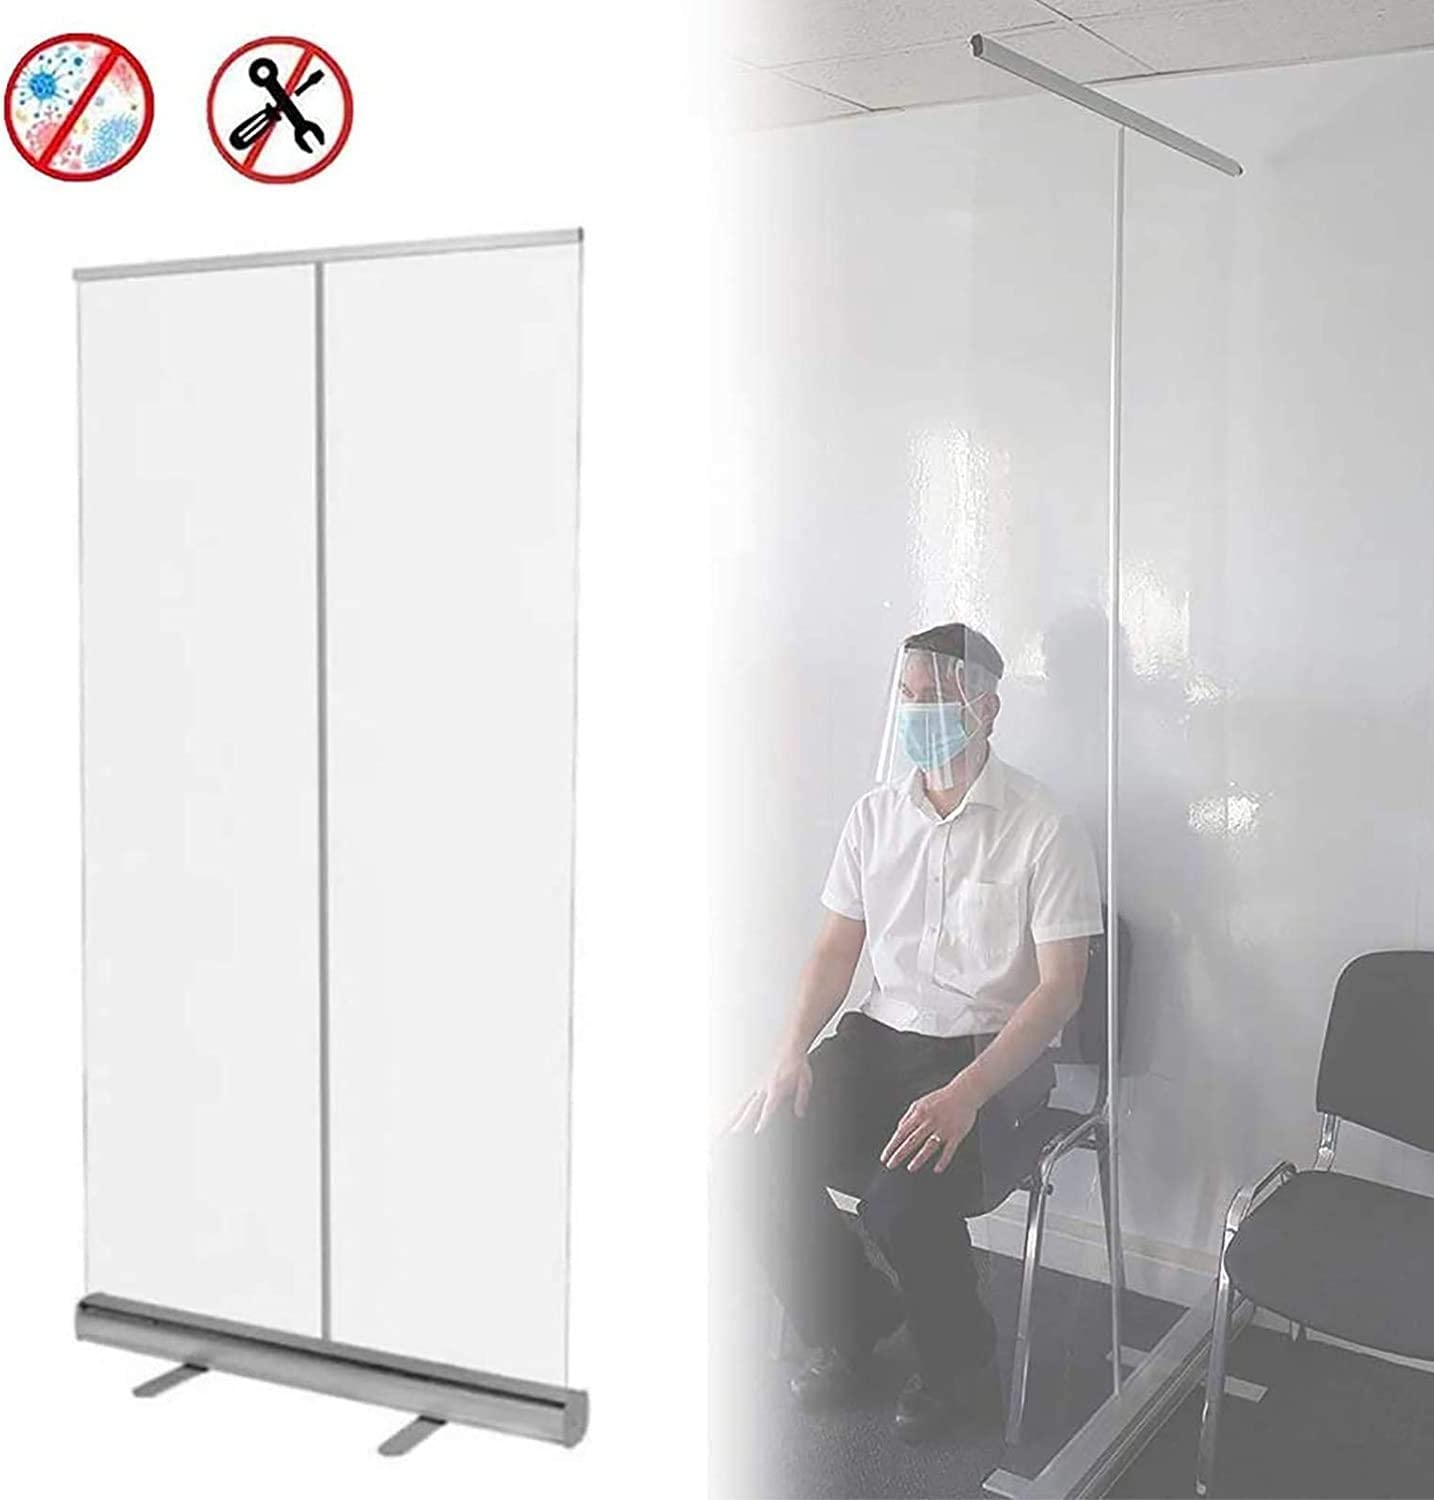 Floor Standing Transparent Floor-Standing Sneeze Guard Protection Screen Social Distancing Screen Spit Protection DUWEN Floor Standing Sneeze GuardFace Shields Dividers Roller Pull Up Clear Banner